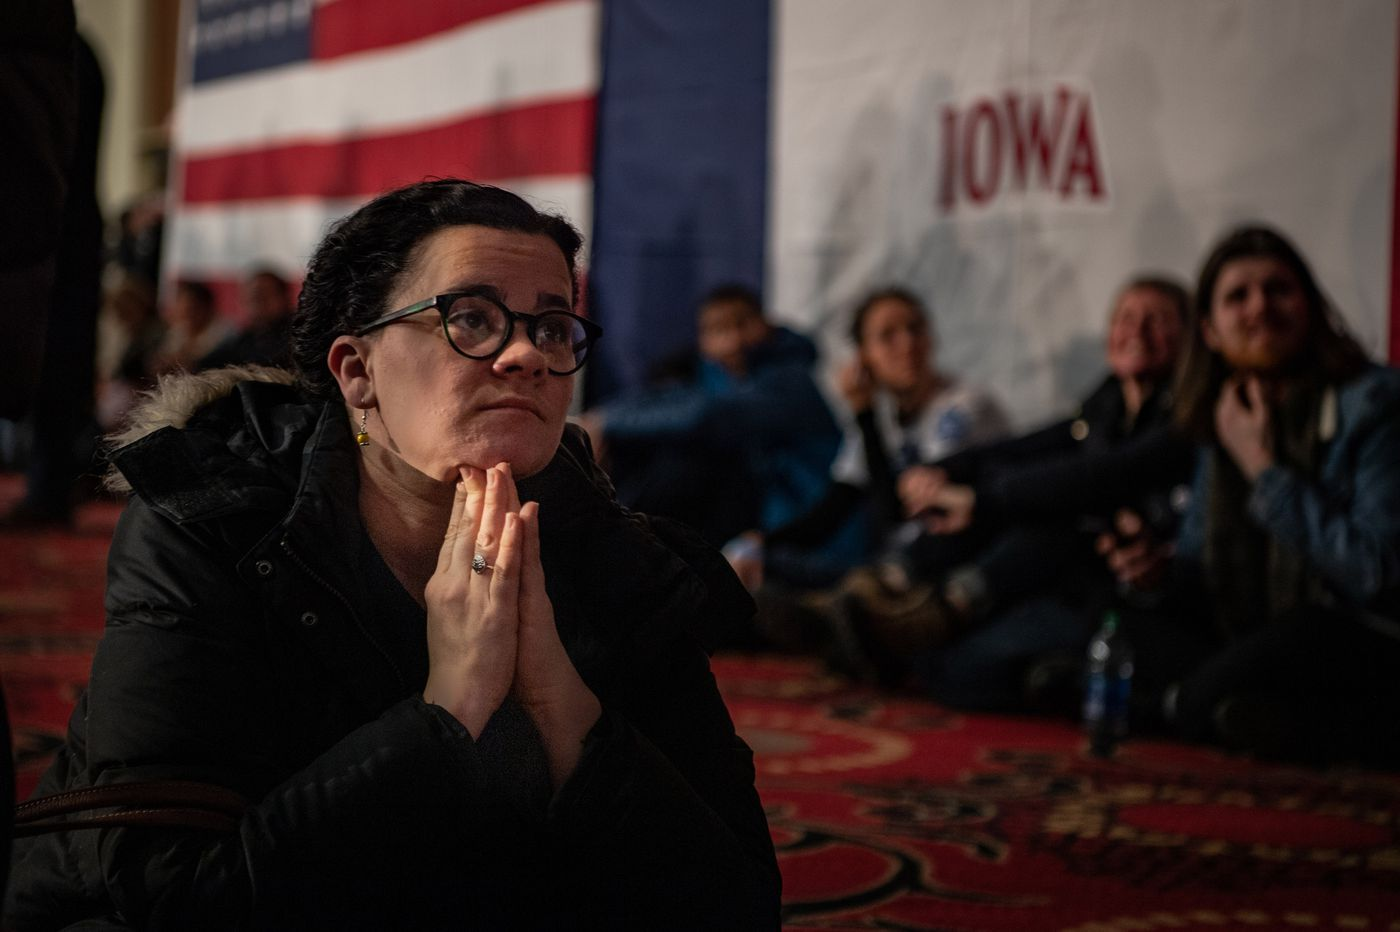 Kill the Iowa Caucus and start fixing American democracy from the ground up | Will Bunch